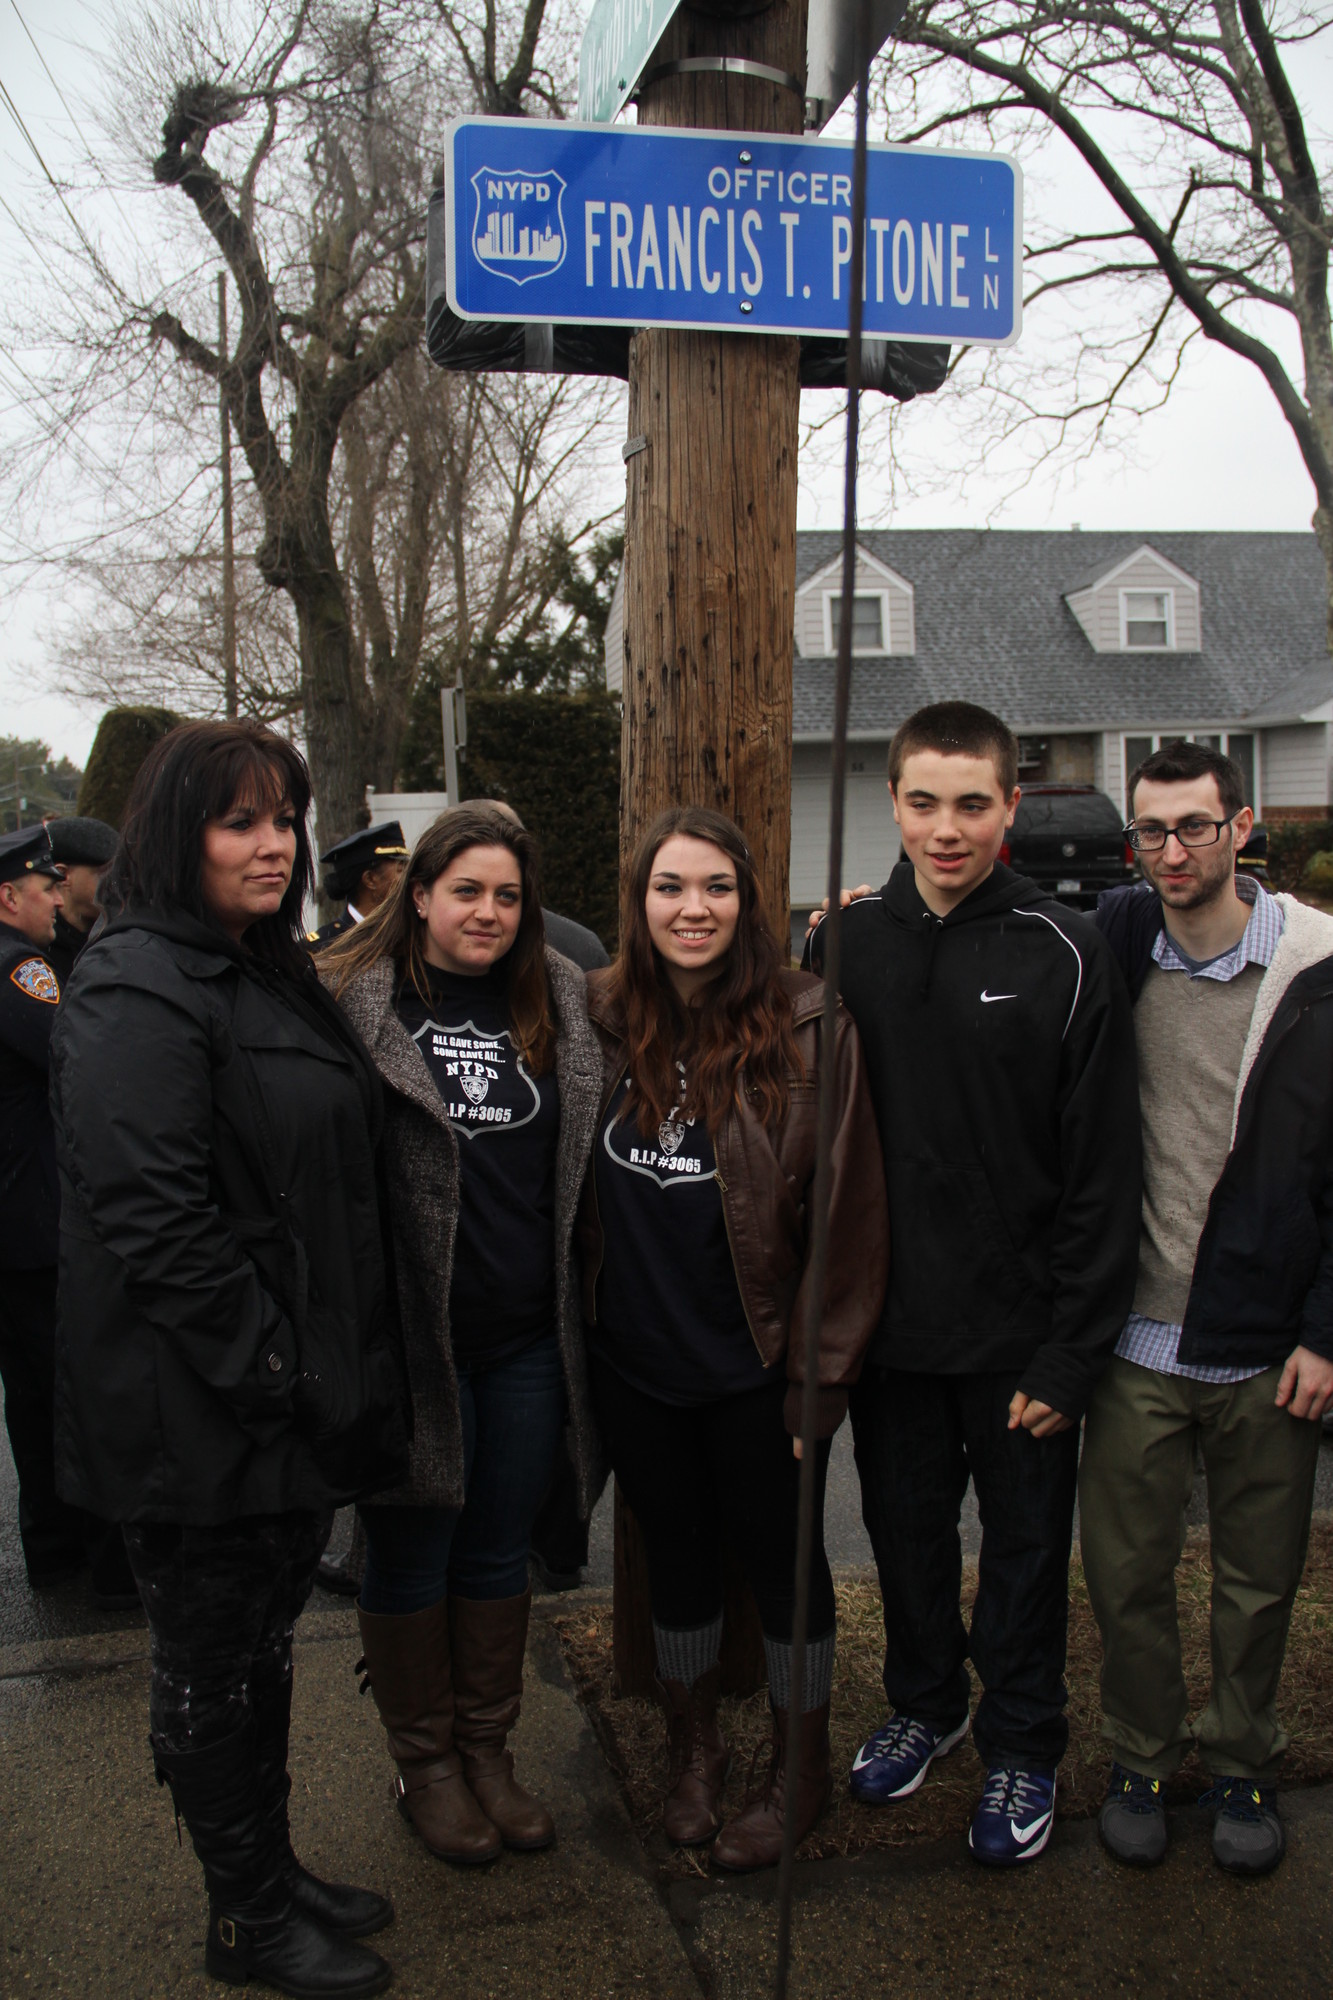 The Pitone family, from left, Linda, Nicole, Shannon, Kyle and Erik, during last Saturday's street dedication ceremony.